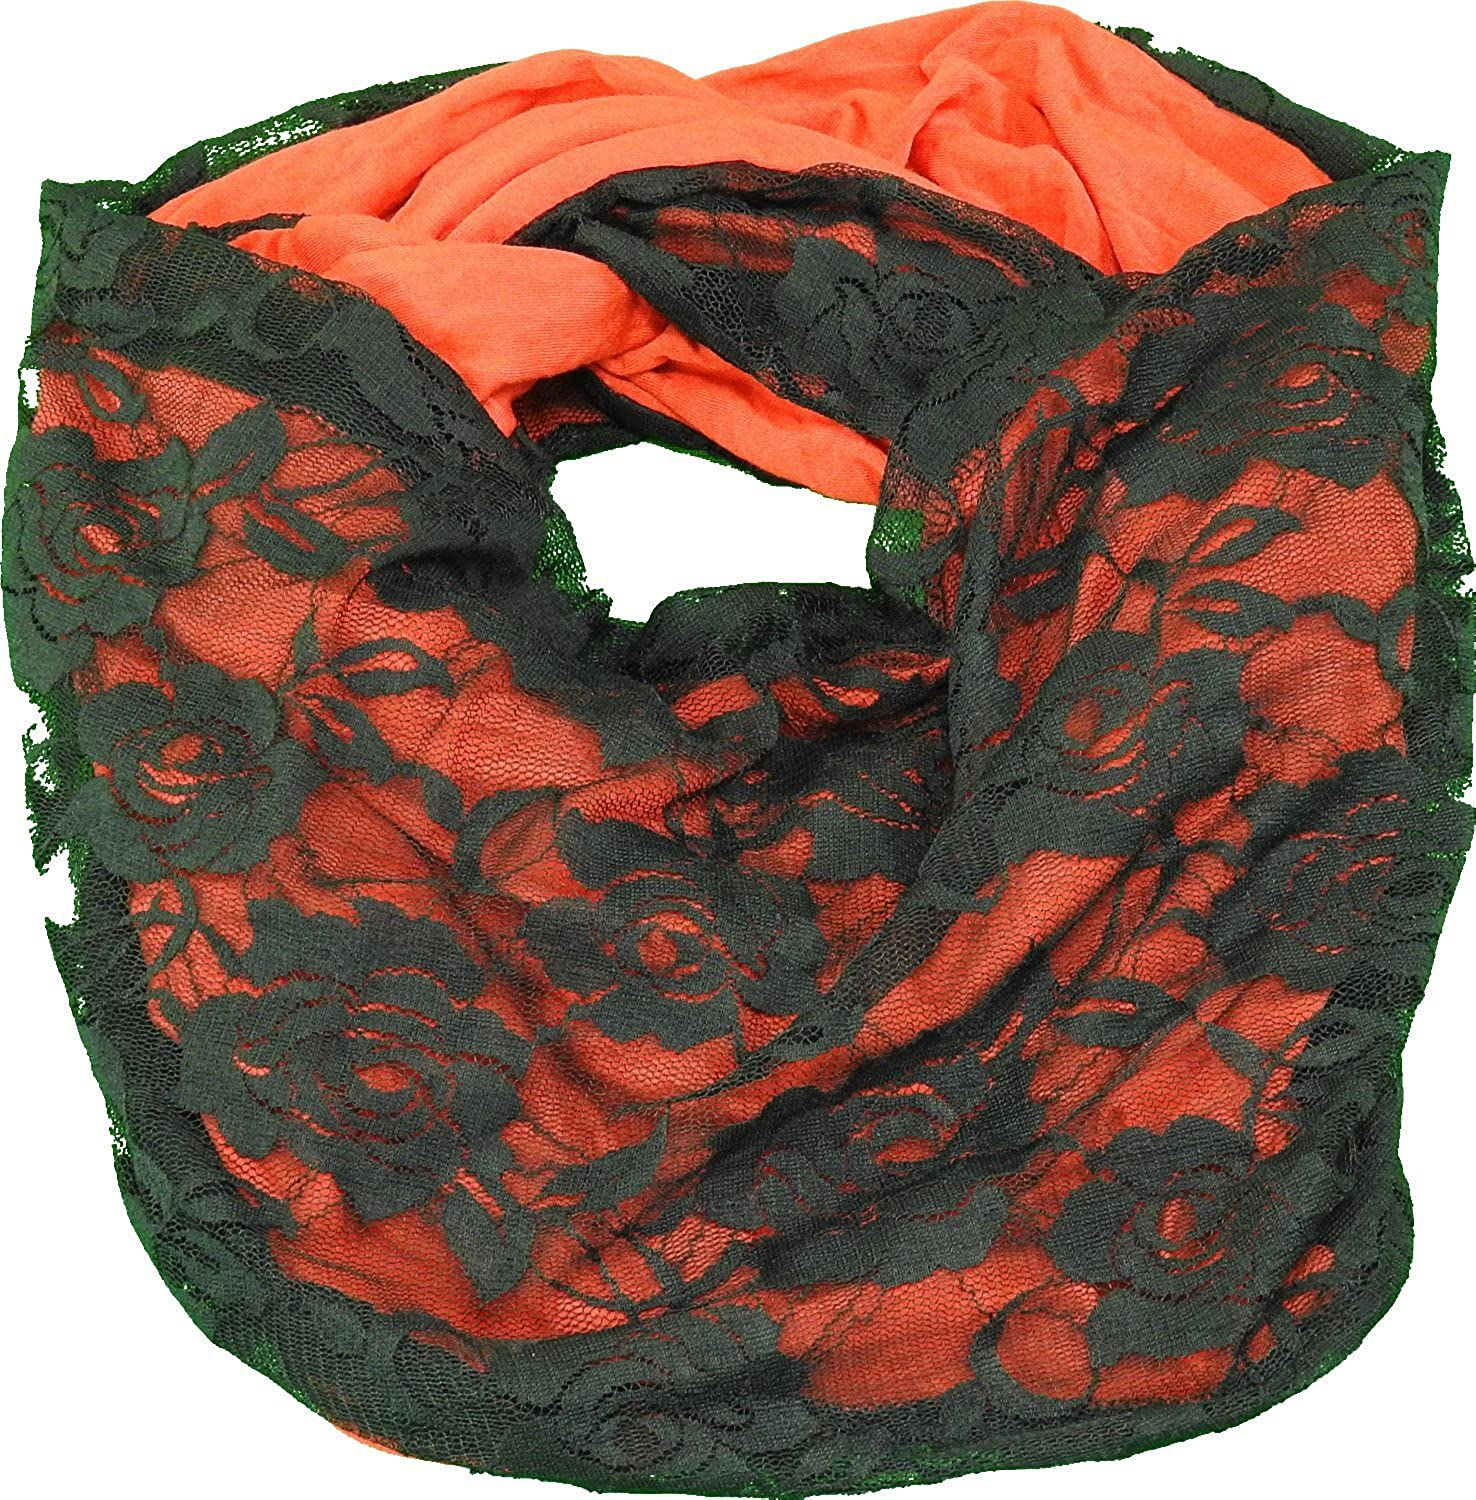 Wrapsbody in Hues Ladies Infinity Scarf Red Covered in Black Lace